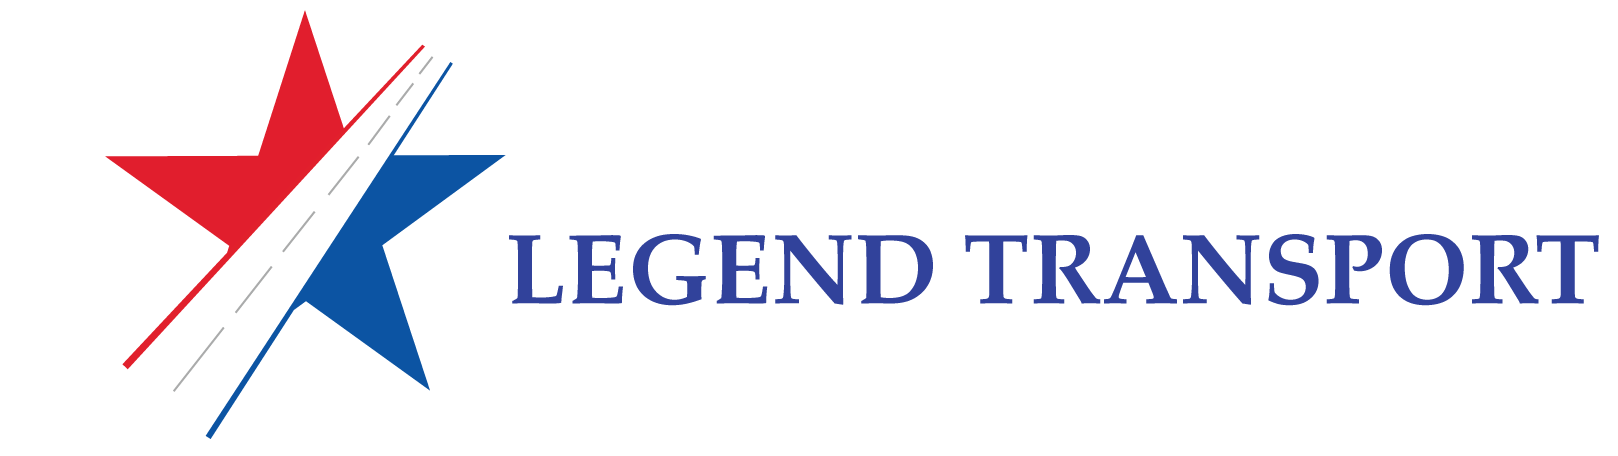 http://truckingcorpuschristi.com/wp-content/uploads/2015/07/Legend-Transport-Logo-5.png